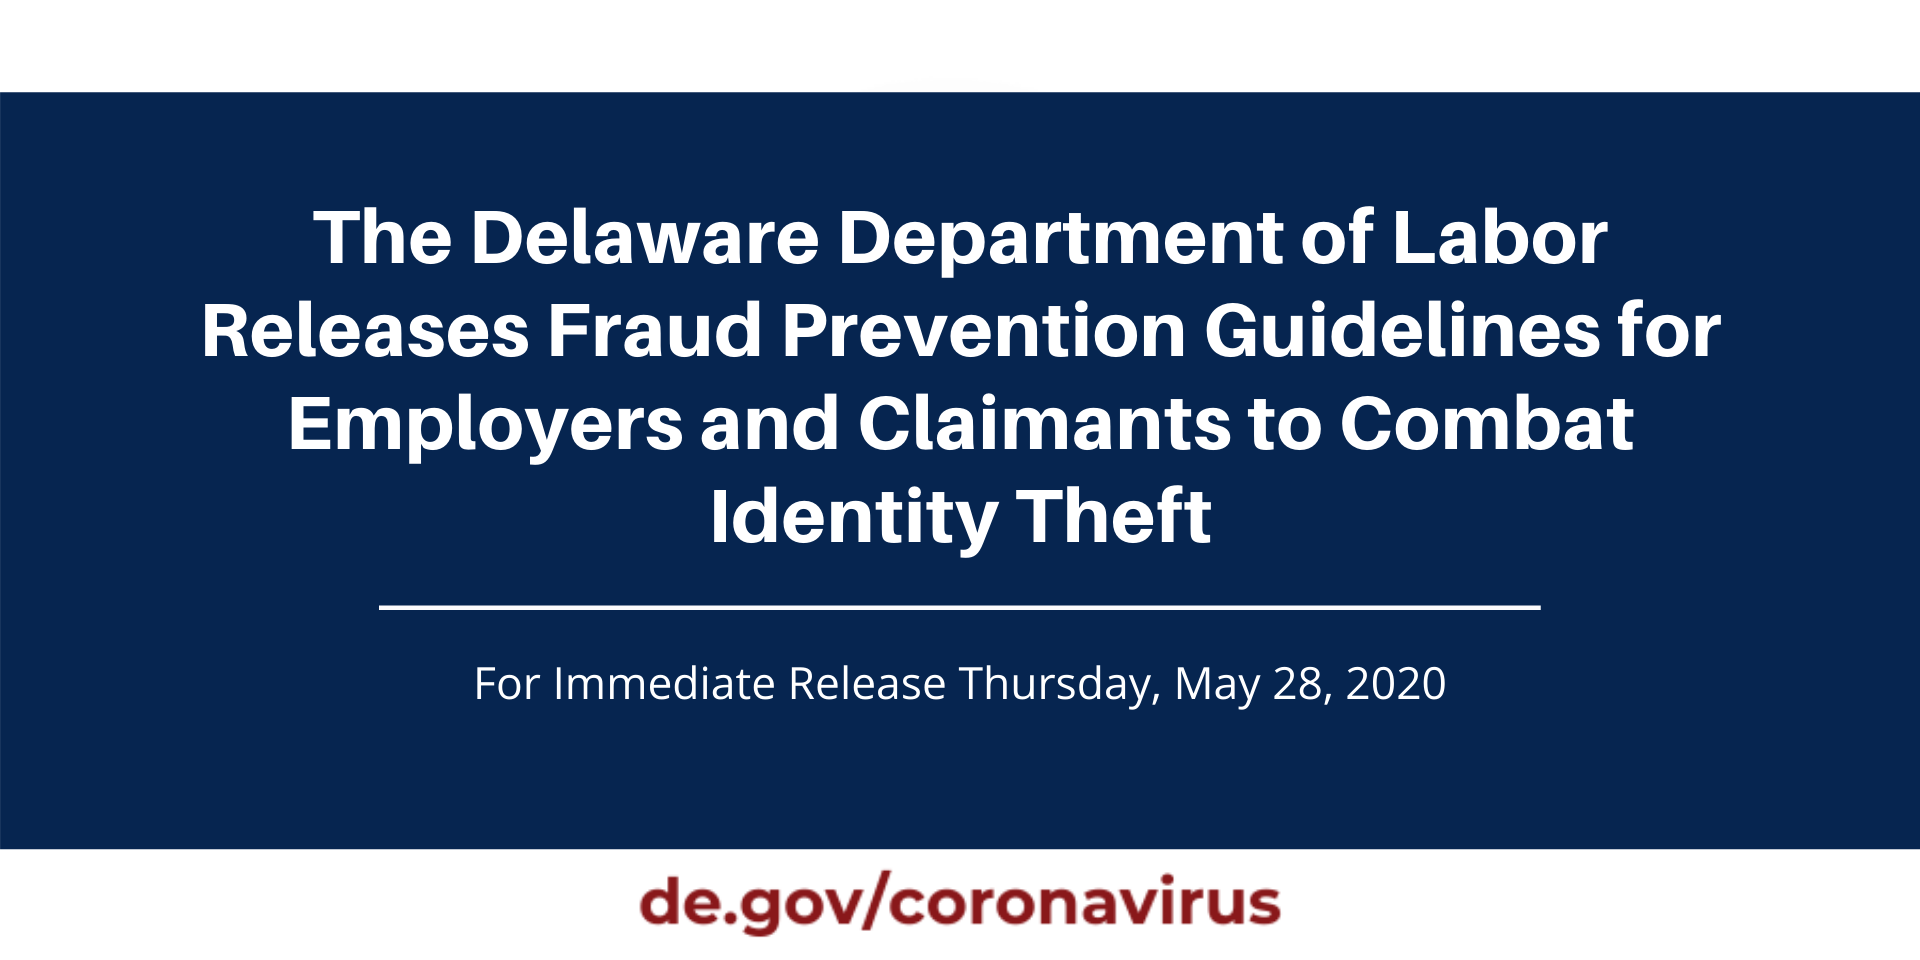 The De Dept Of Labor Releases Fraud Prevention Guidelines State Of Delaware News